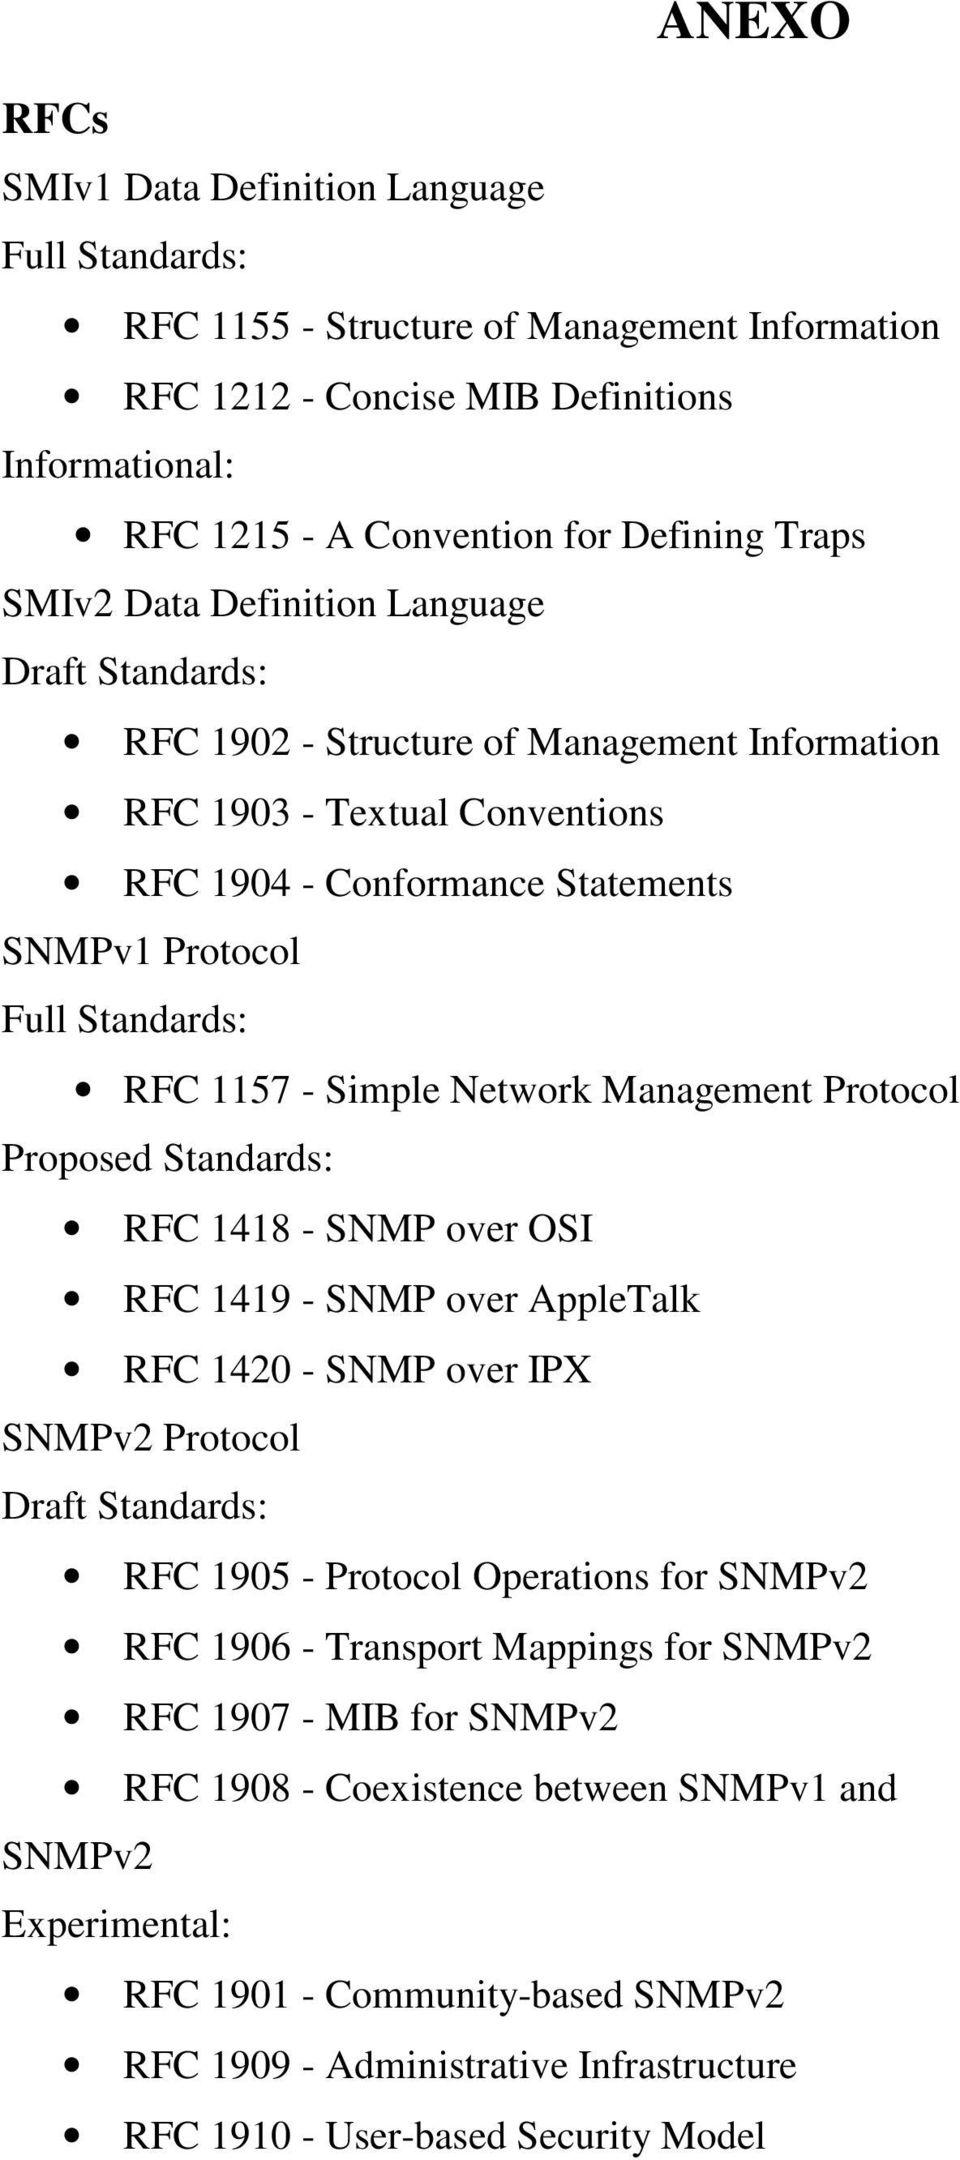 1157 - Simple Network Management Protocol Proposed Standards: RFC 1418 - SNMP over OSI RFC 1419 - SNMP over AppleTalk RFC 1420 - SNMP over IPX SNMPv2 Protocol Draft Standards: RFC 1905 - Protocol